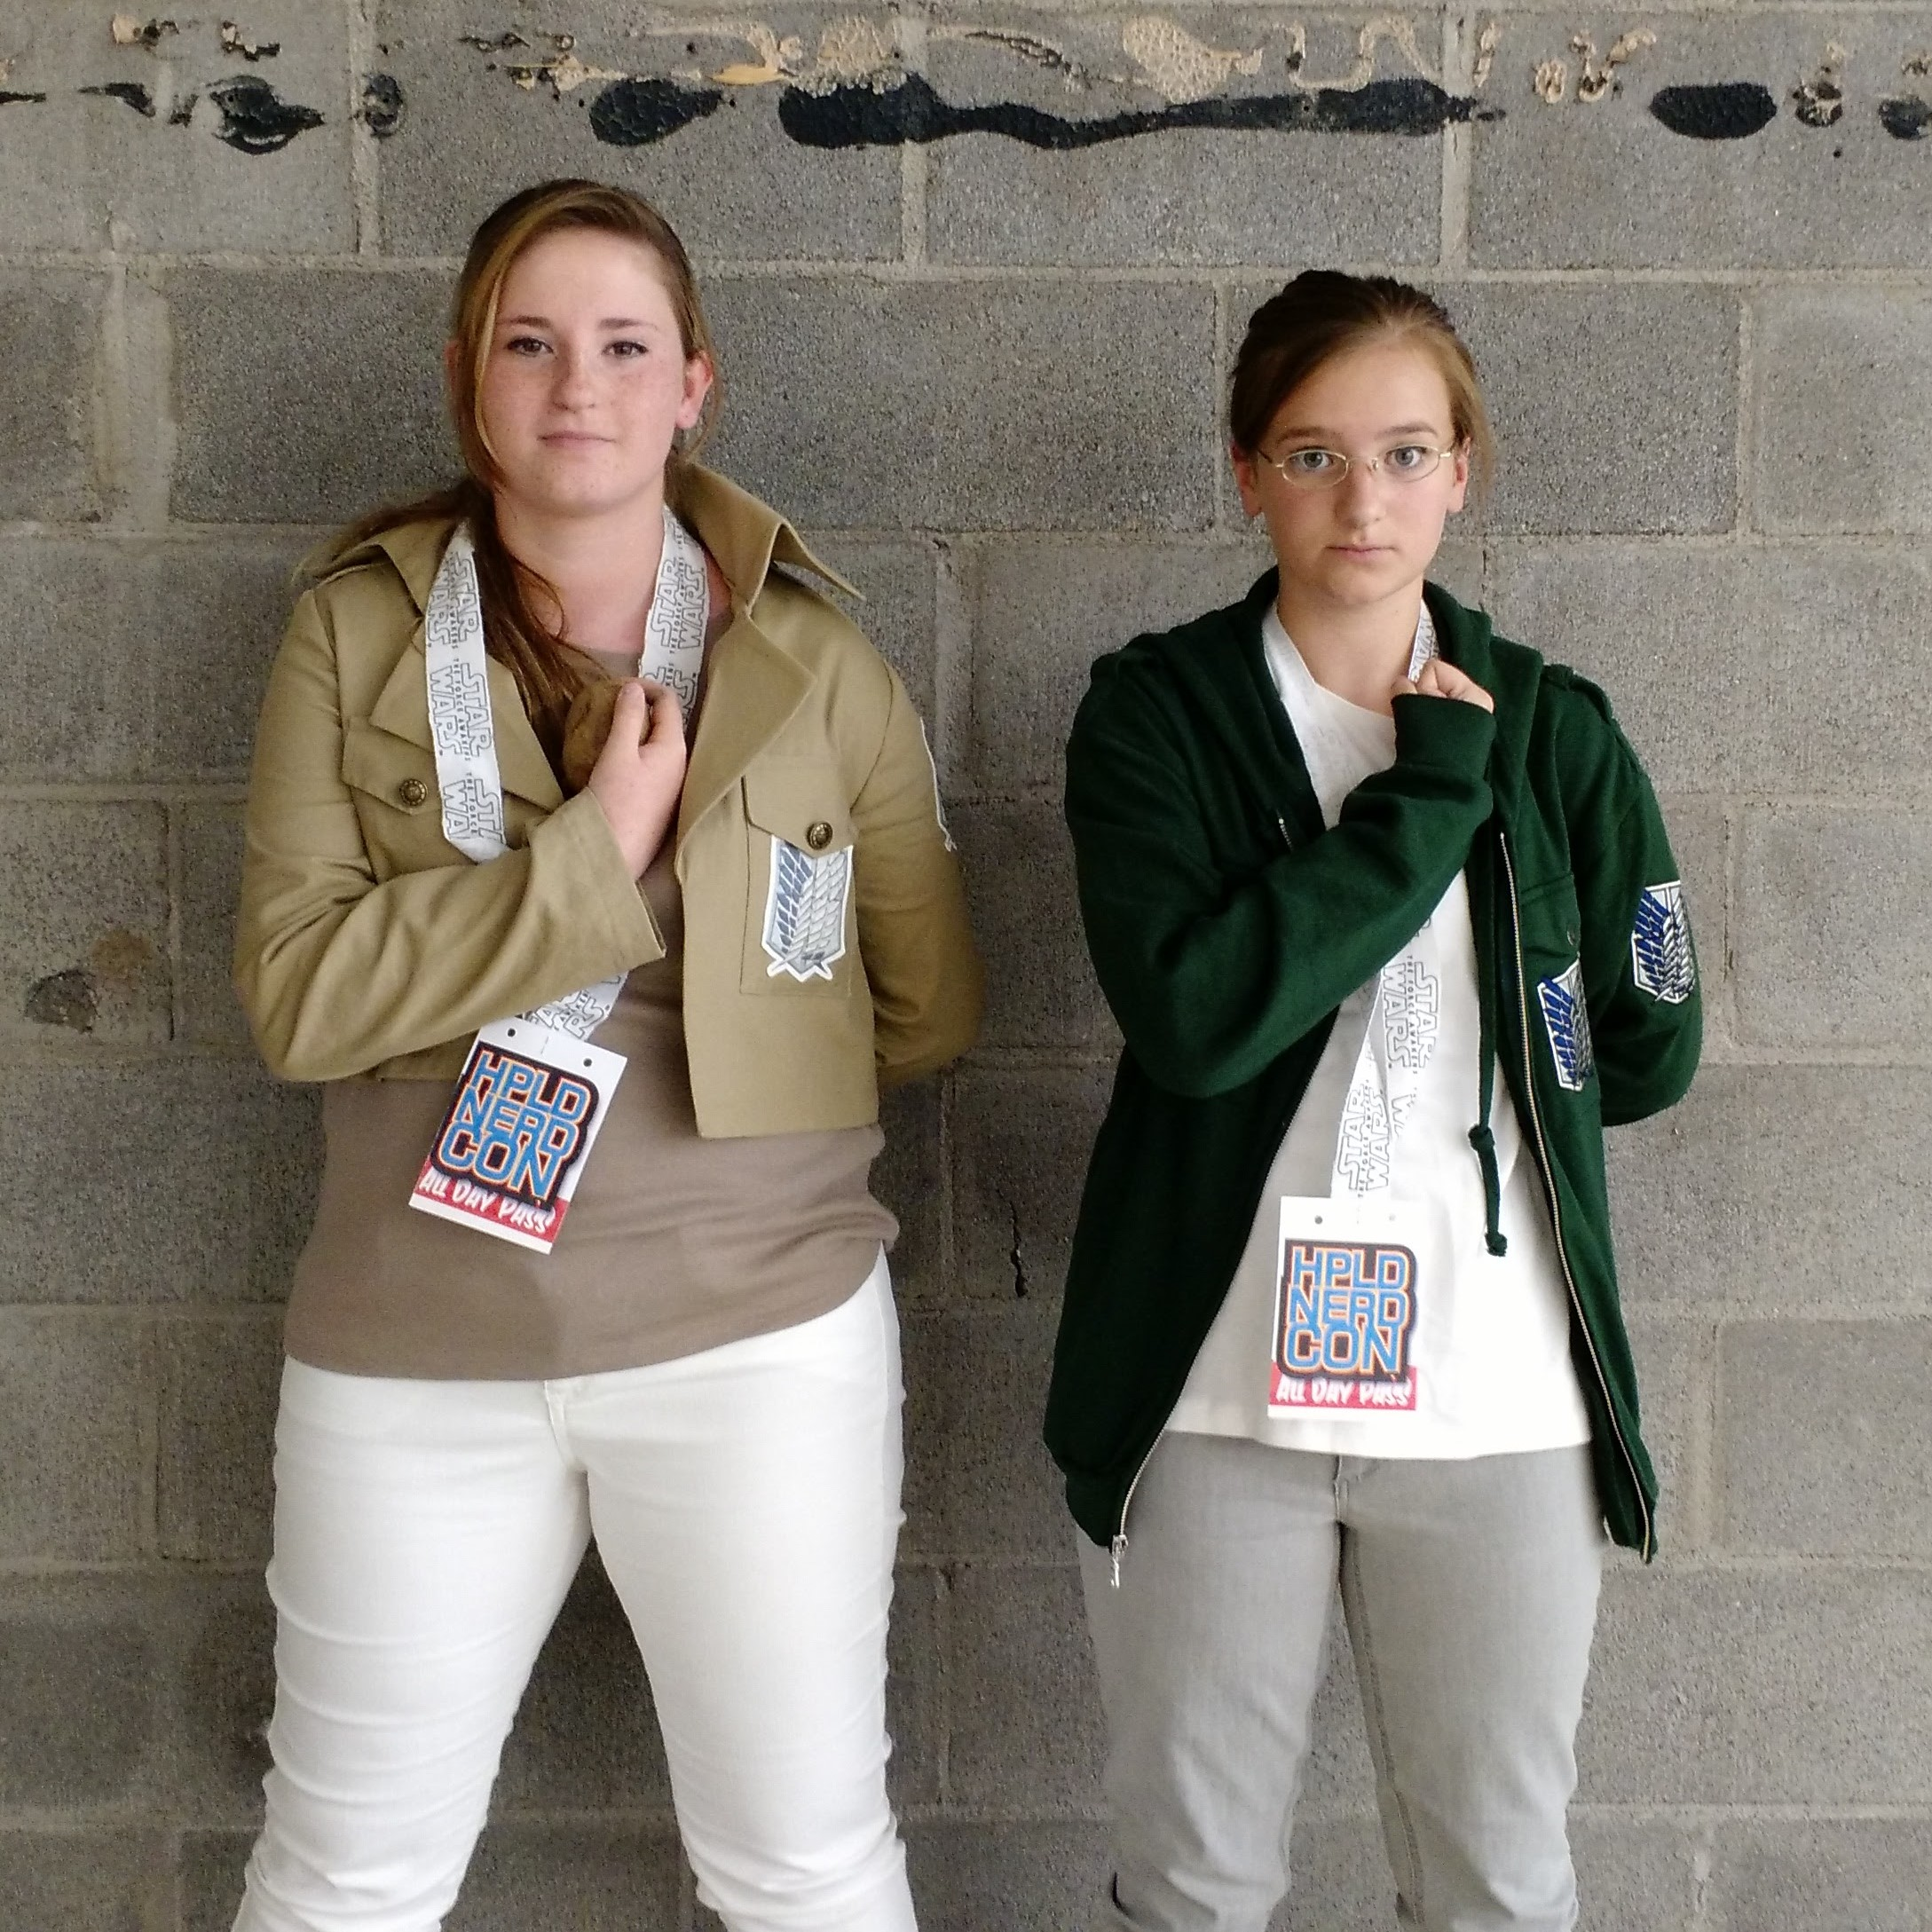 Cosplaying characters from Attack on Titan.